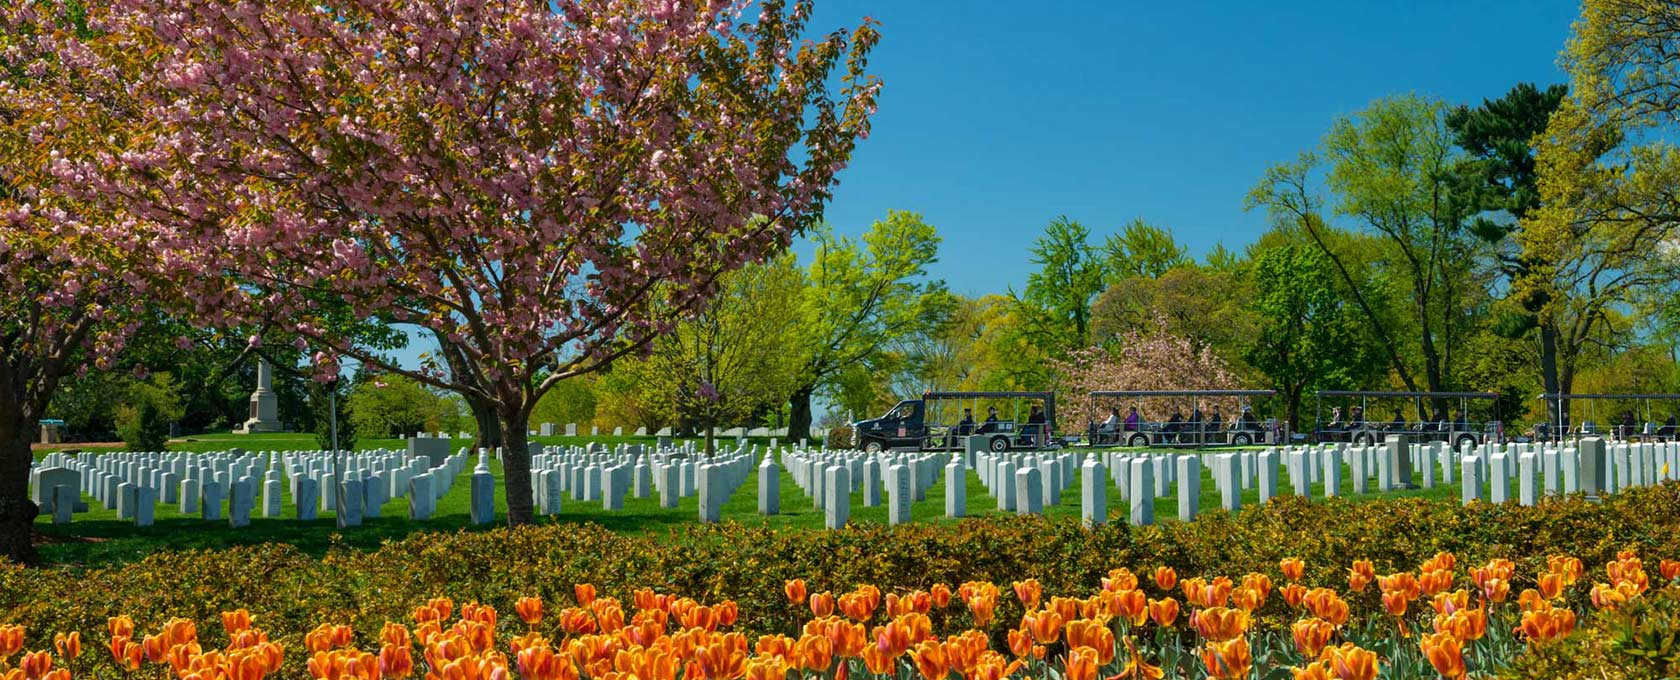 Tulips at Arlington National Cemetery